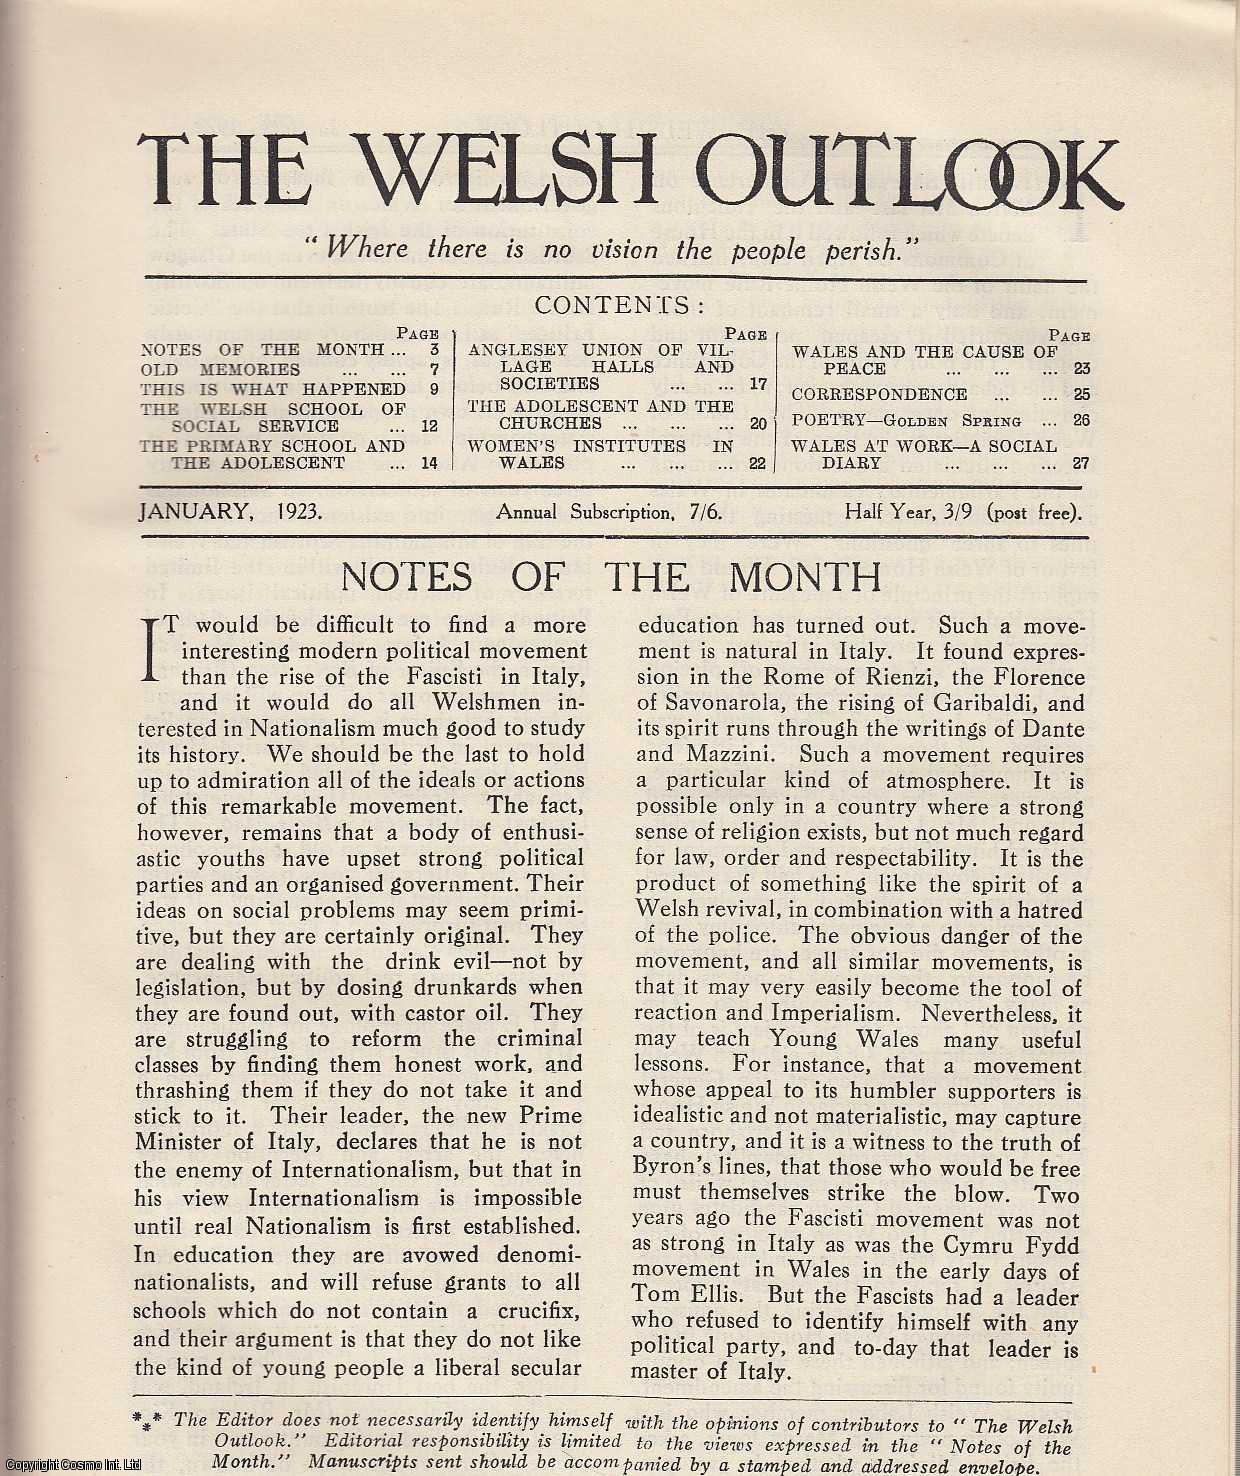 The Welsh Outlook. A Monthly Journal of National Social Progress. January, 1923. Contains; The Welsh School of Social Service by G.A. Edwards; The Primary School and The Adolescent by Evan T. Davis; Anglesey Union of Village Halls and Societies by Emily Matthews; The Adolescent and The Churches by Jenkin James; Women's Institutes in Wales by Lily Lumley; Wales and The Cause of Peace by T. Huws Davies; Wales at Work - A Social Diary., Thomas Jones (Editor)